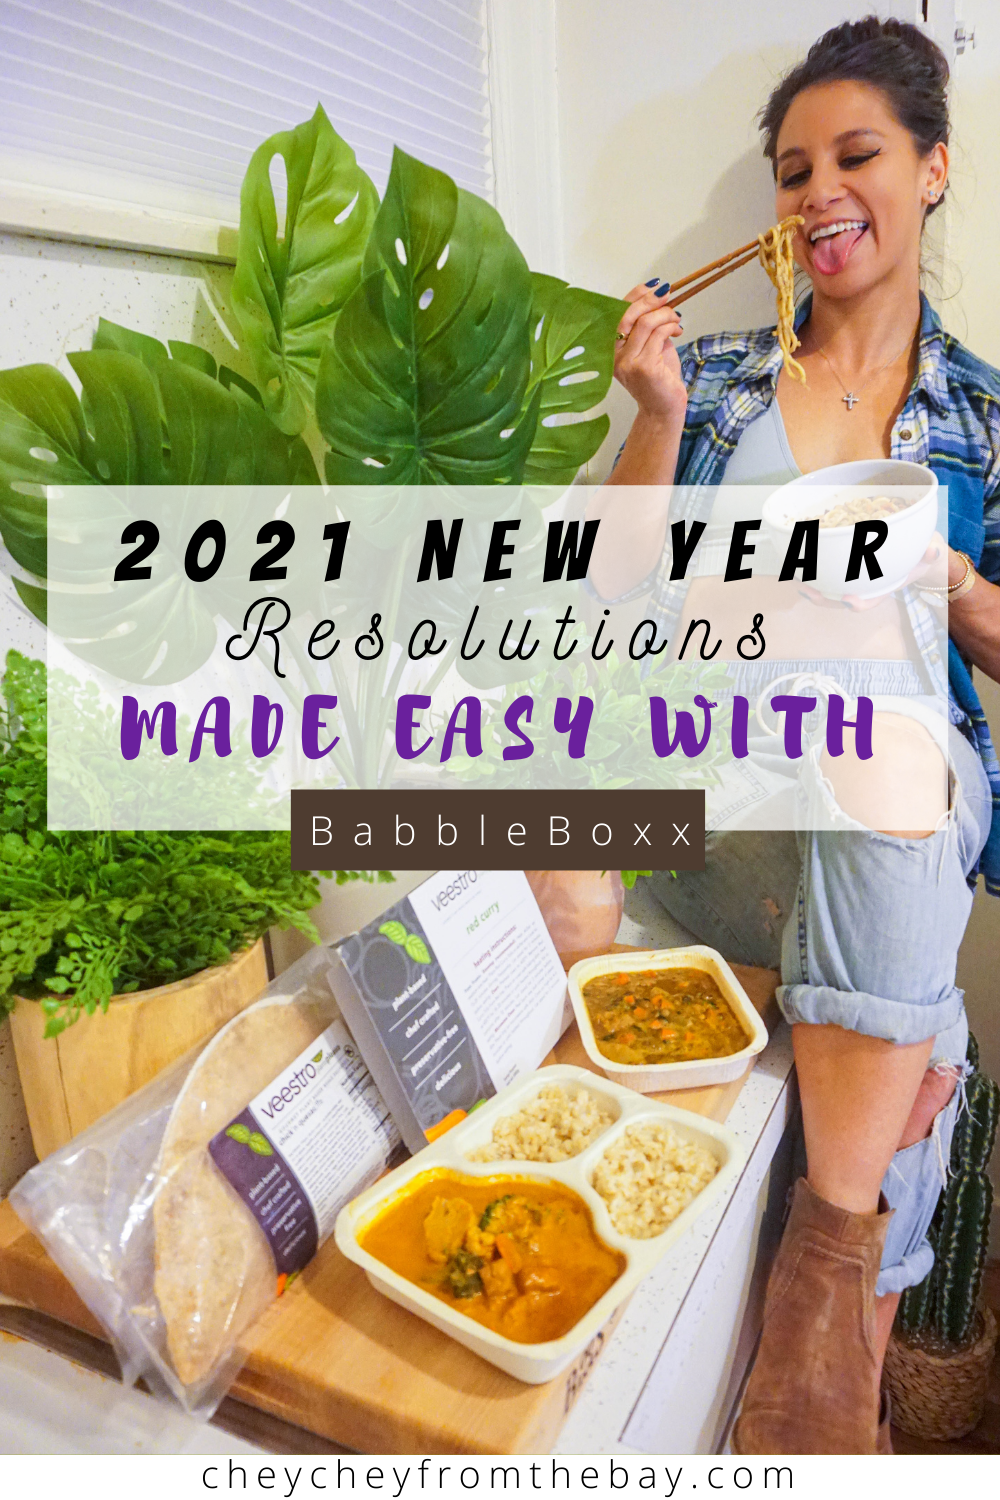 New Year Resolutions Made Easy With BabbleBoxx